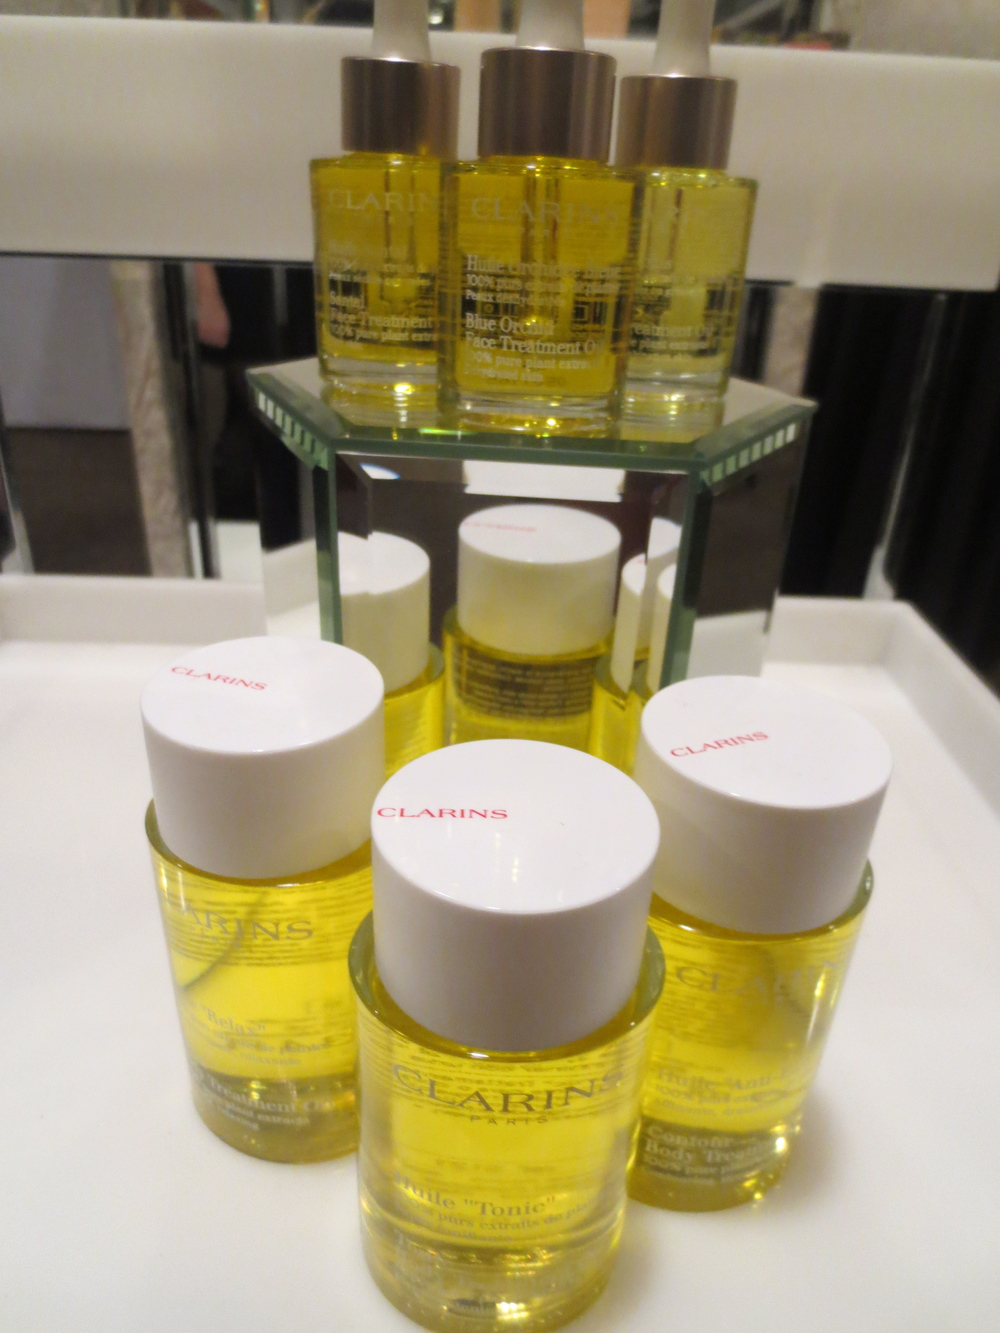 Clarins's famed Tonic treatment body oil and Blue Orchid face treatment oil.